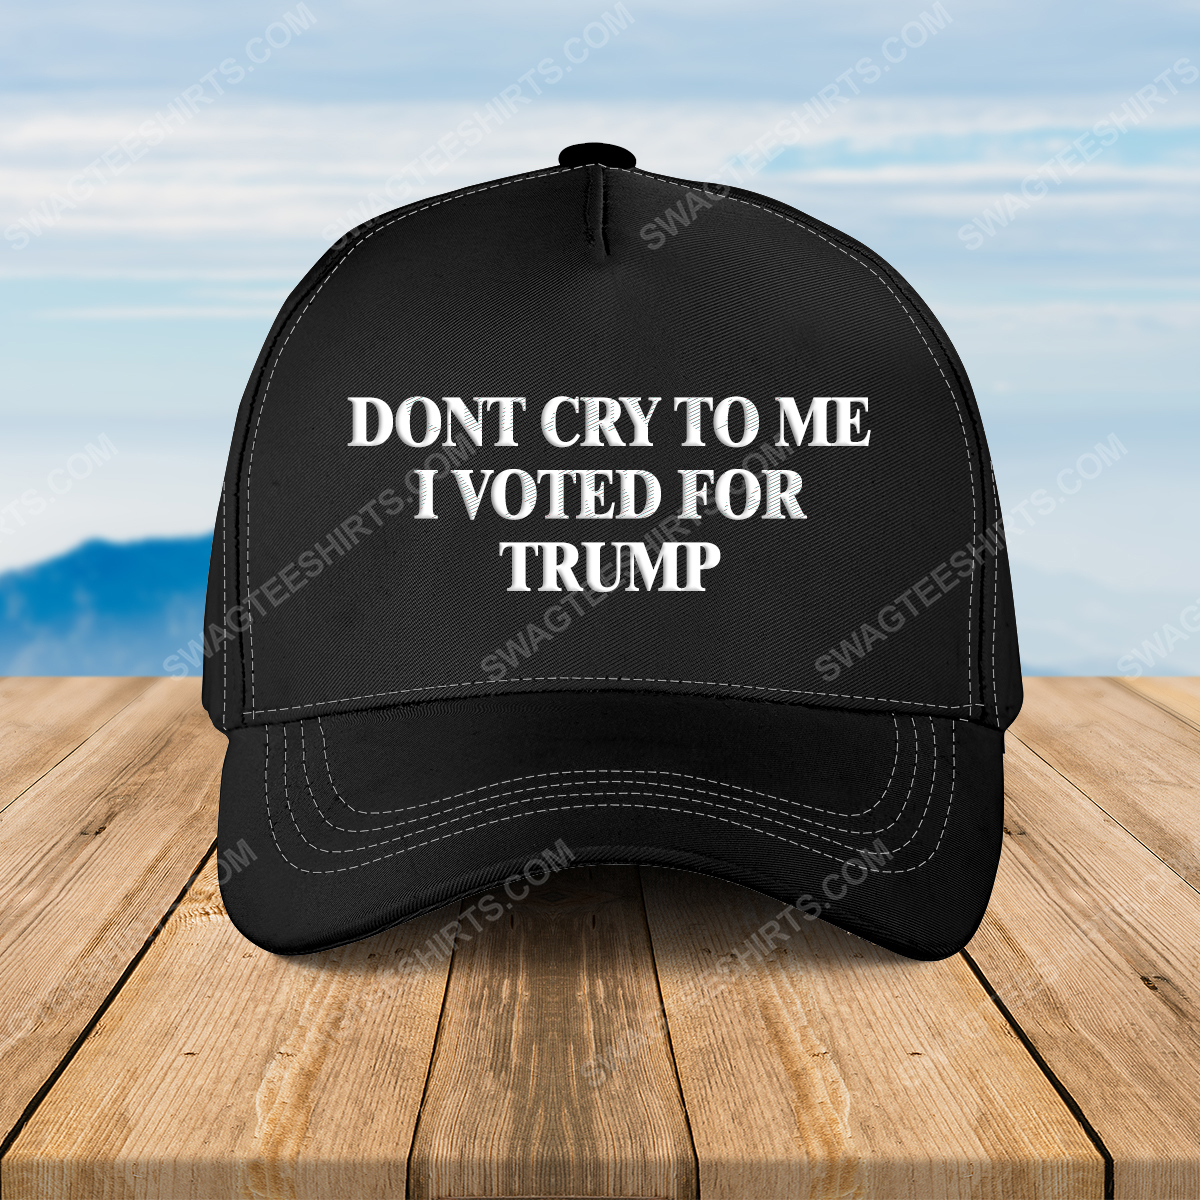 Camo don't cry to me i voted for trump full print classic hat 1 - Copy (3)